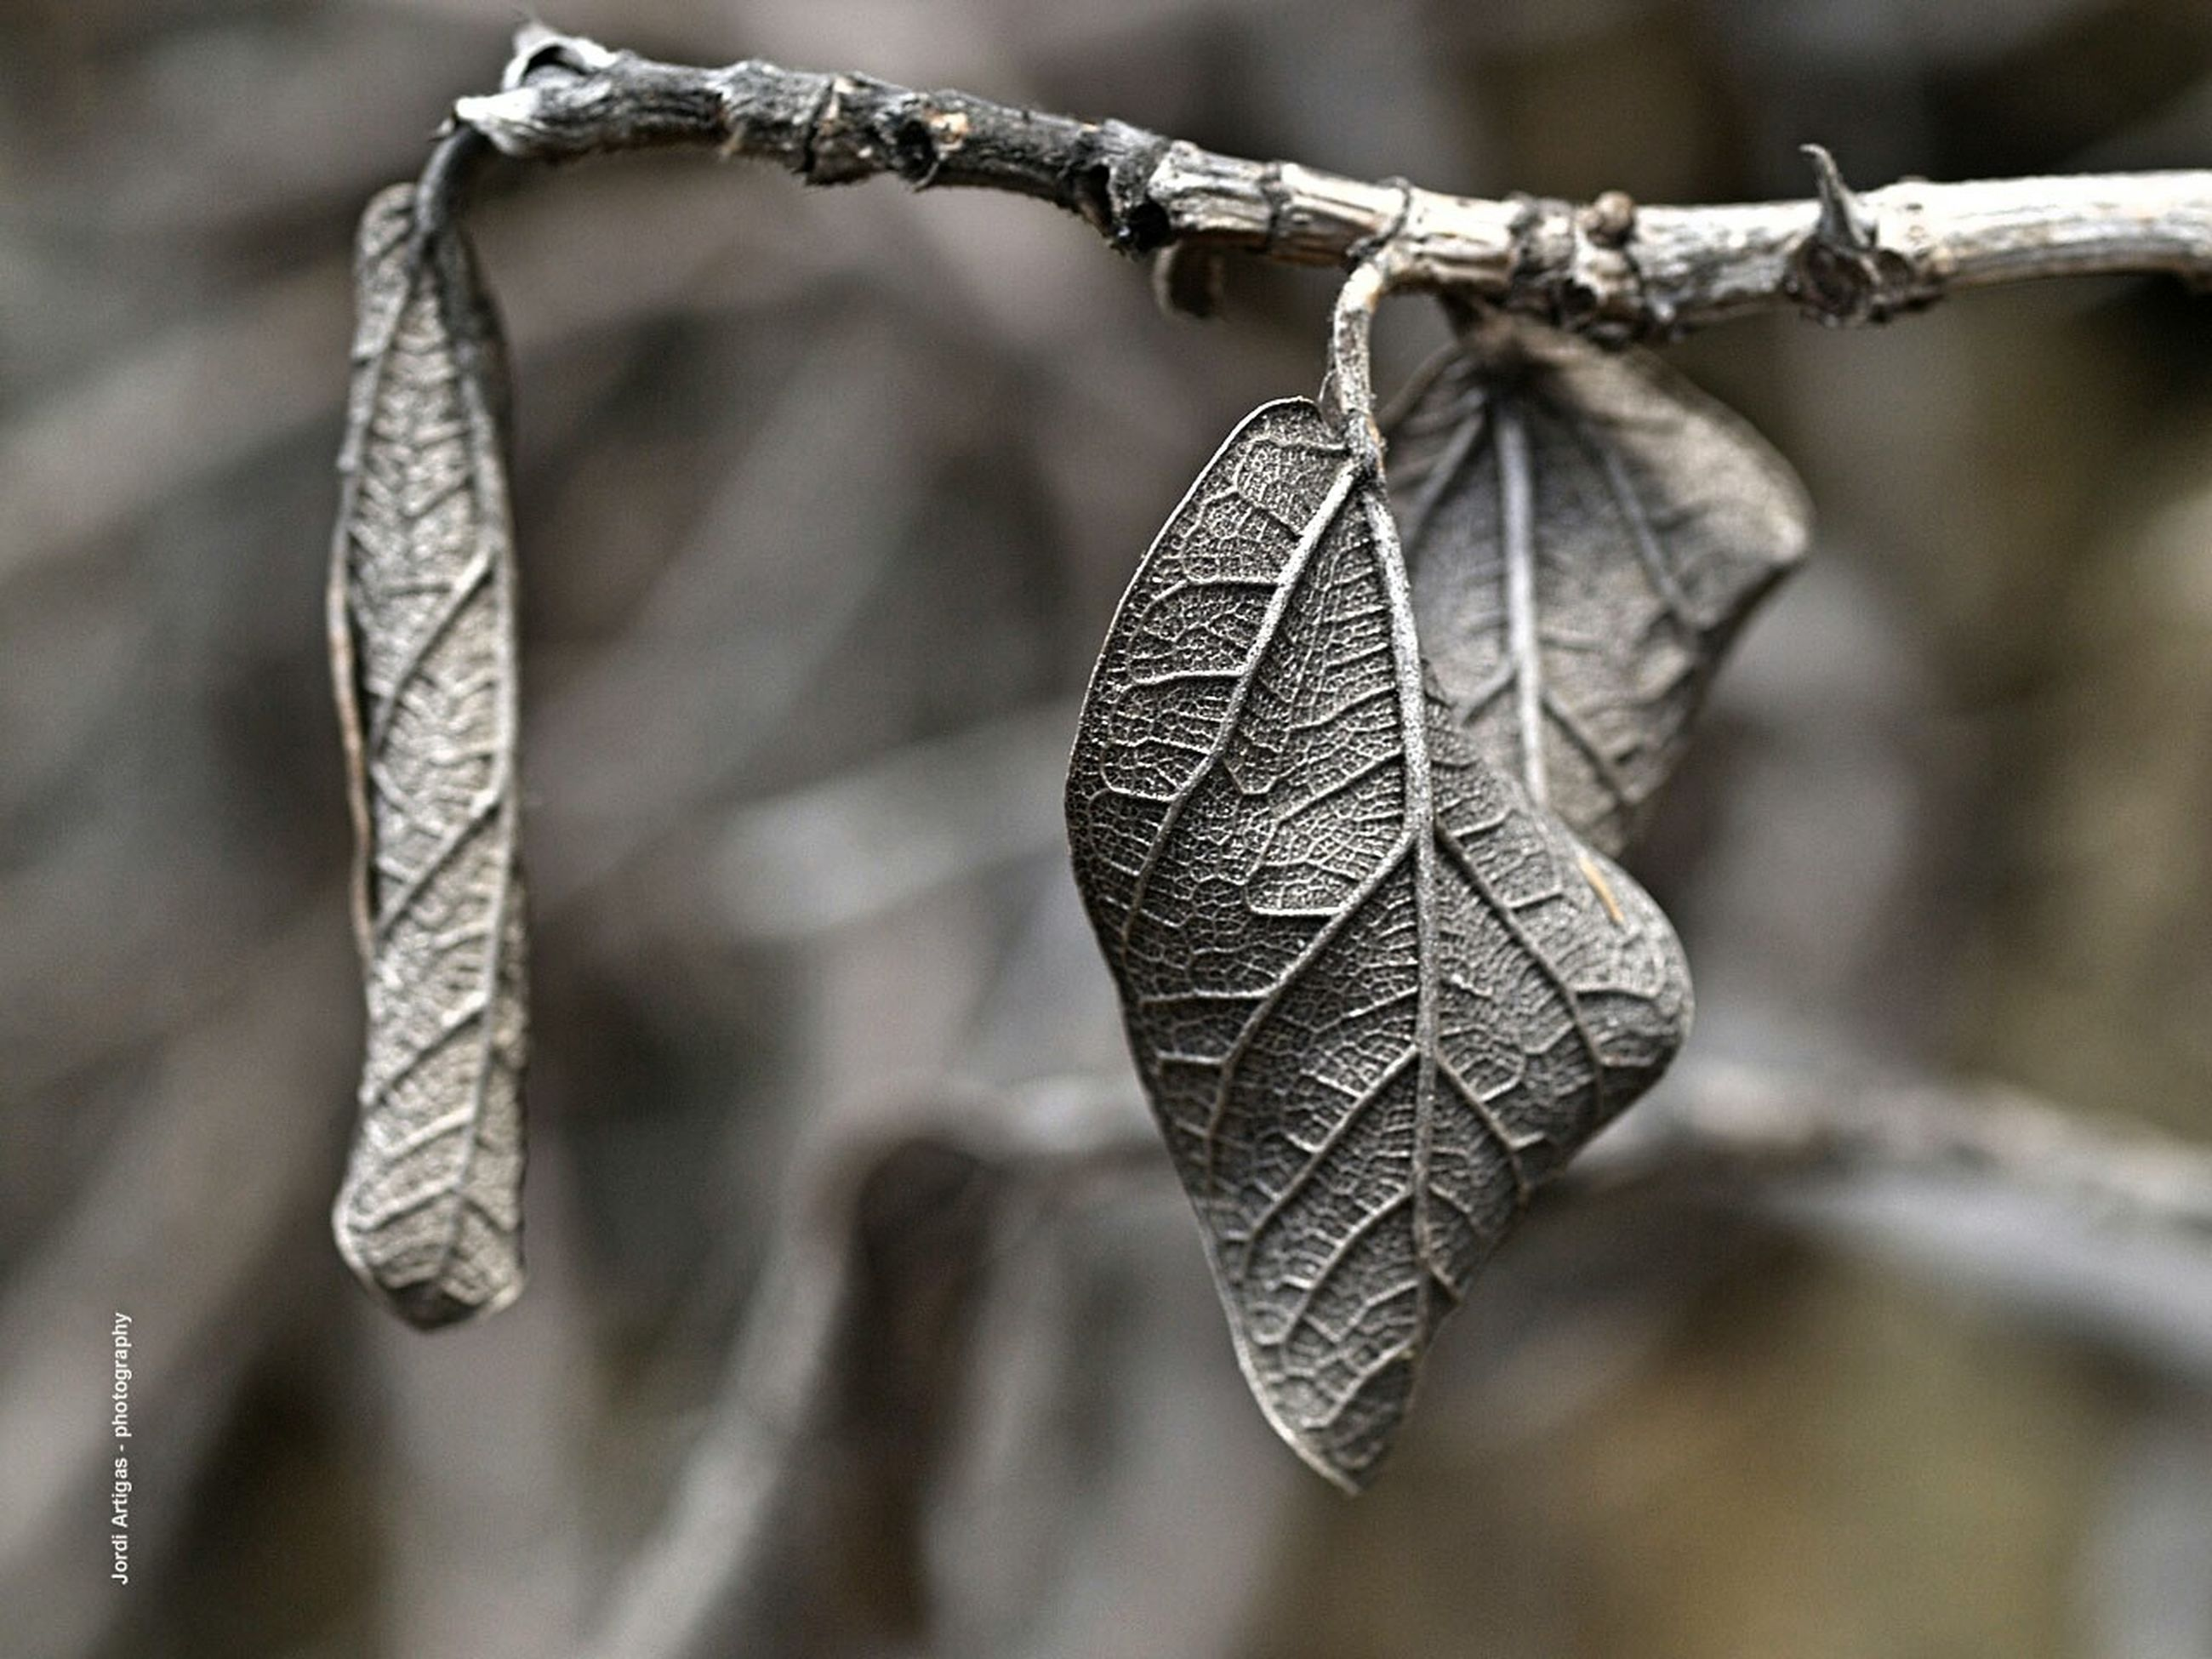 focus on foreground, close-up, hanging, winter, branch, cold temperature, twig, selective focus, season, nature, outdoors, day, snow, weather, covering, frozen, protection, dry, rope, no people